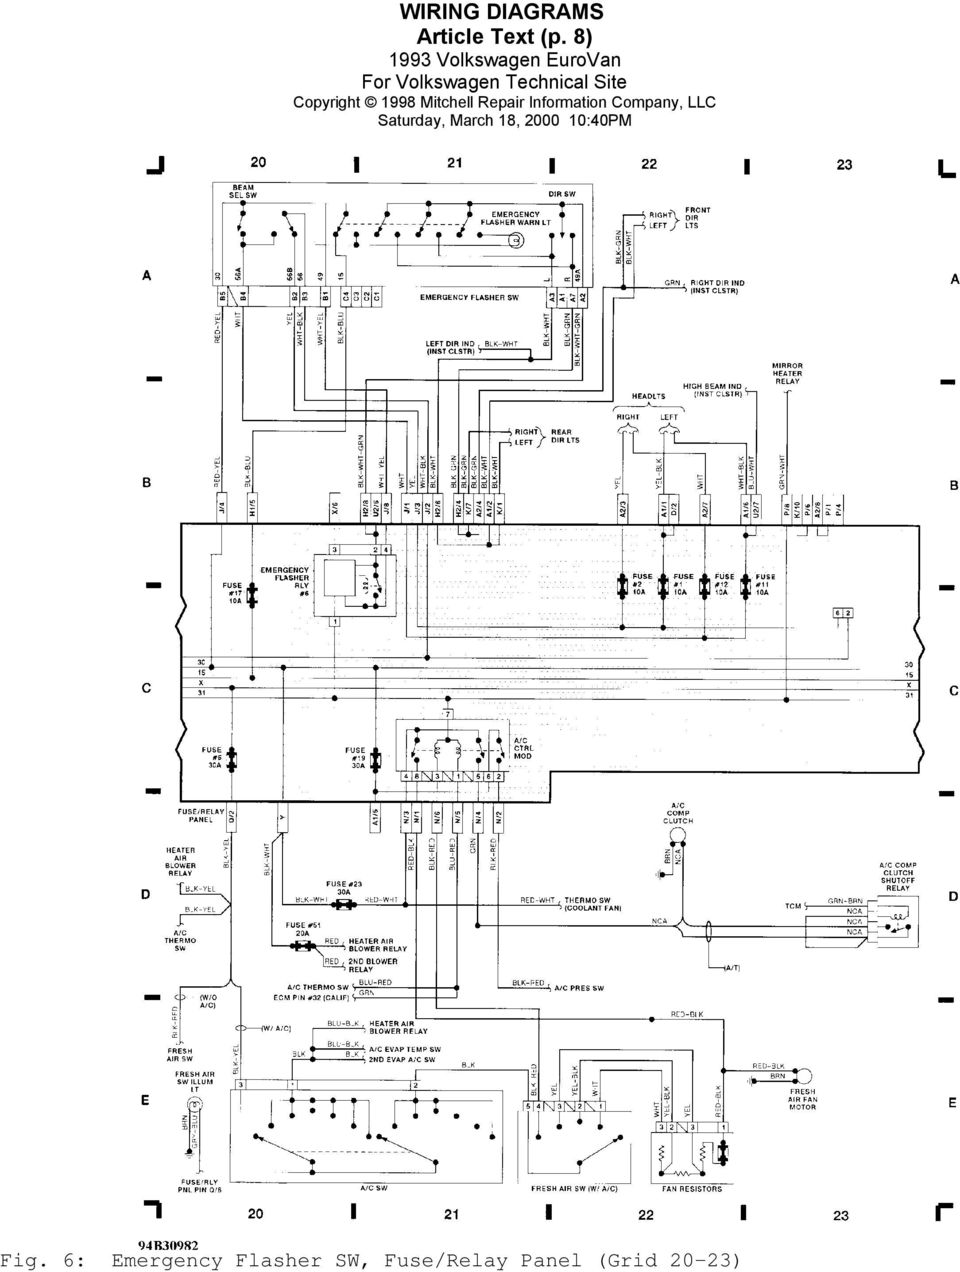 vw golf 2 0 liter a c compressor clutch wiring diagram 2004 u2022 wiring  diagram for free 2011 VW Jetta Engine Diagram 2012 VW Jetta Engine Diagram